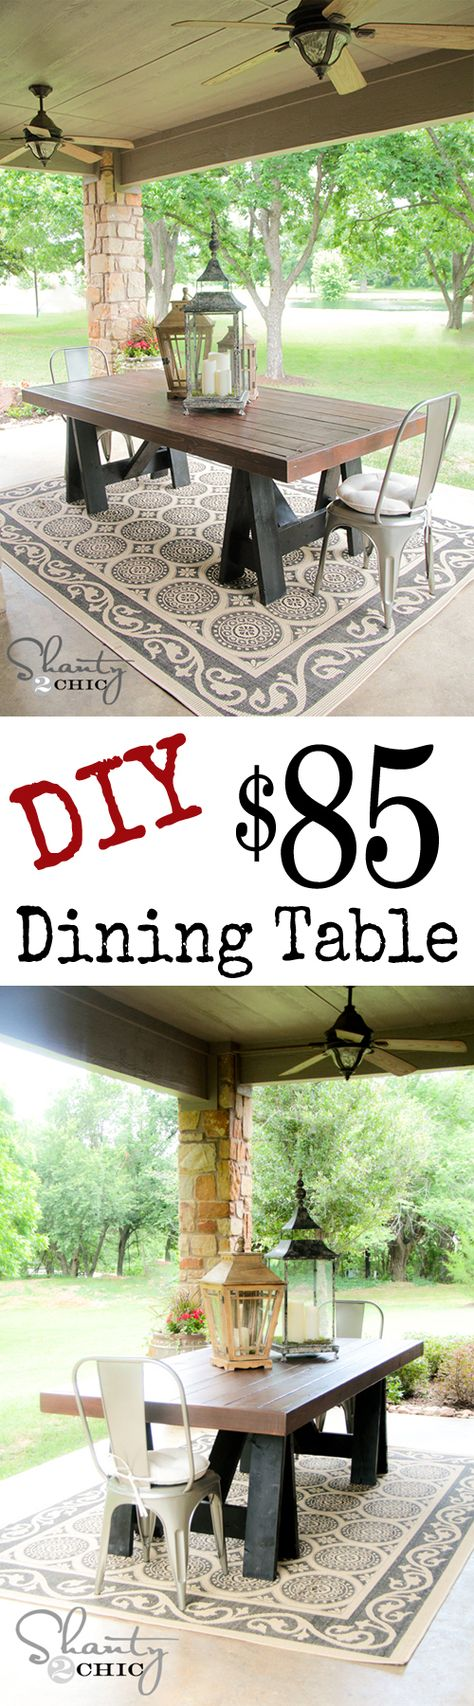 DIY Pottery Barn Dining Table. $100